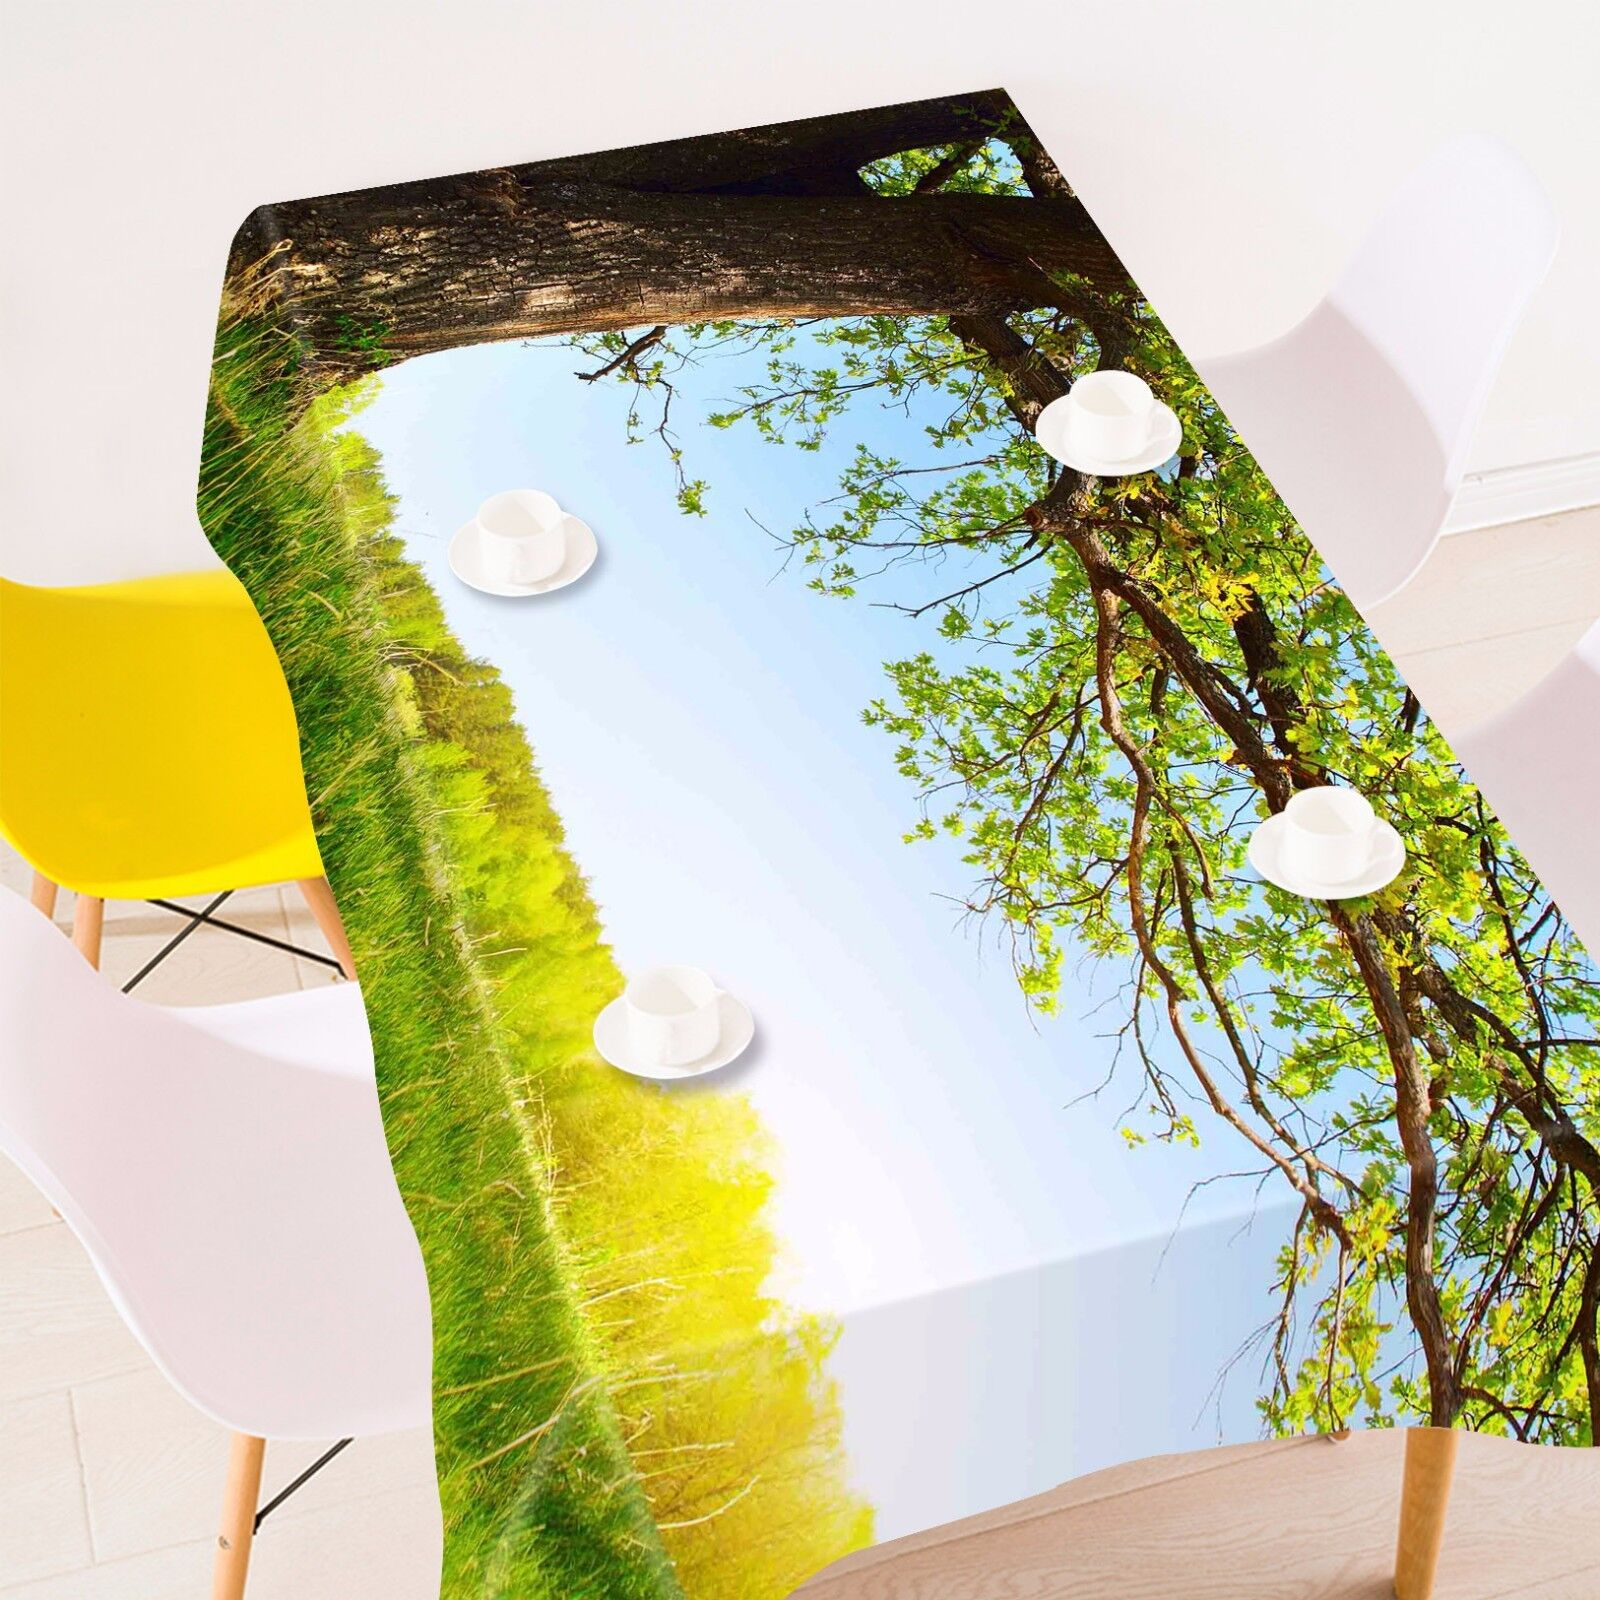 3D Tree lawn97 Tablecloth Table Cover Cloth Birthday Party Event AJ WALLPAPER UK